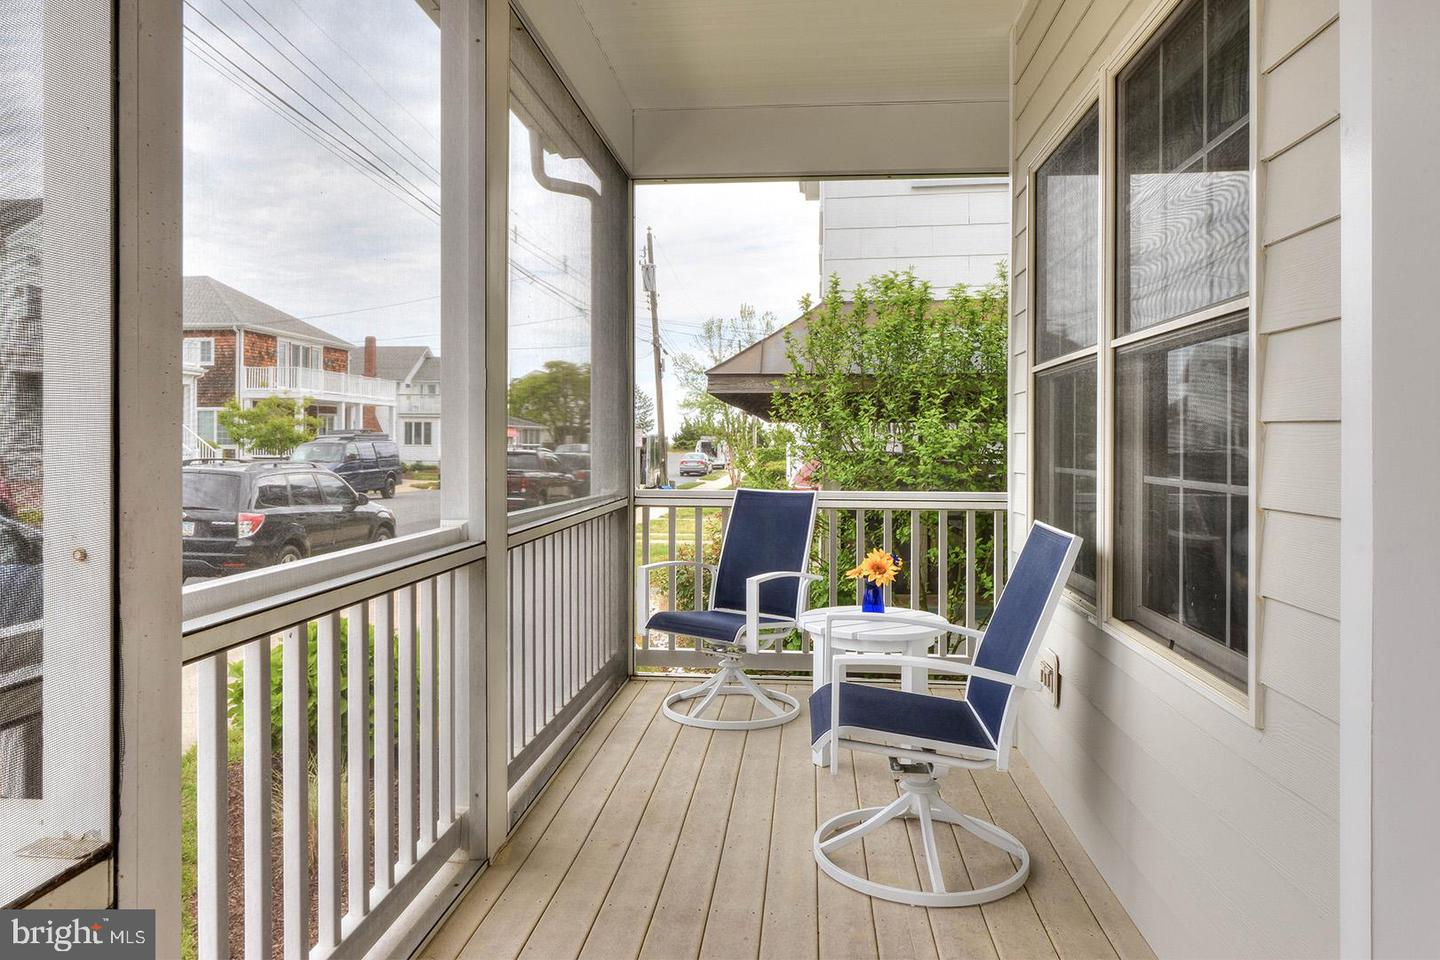 DESU139874-301711163959-2019-05-16-07-32-35 10 New Castle St | Rehoboth Beach, DE Real Estate For Sale | MLS# Desu139874  - Rehoboth Beach Real Estate - Bryce Lingo and Shaun Tull REALTORS, Rehoboth Beach, Delaware